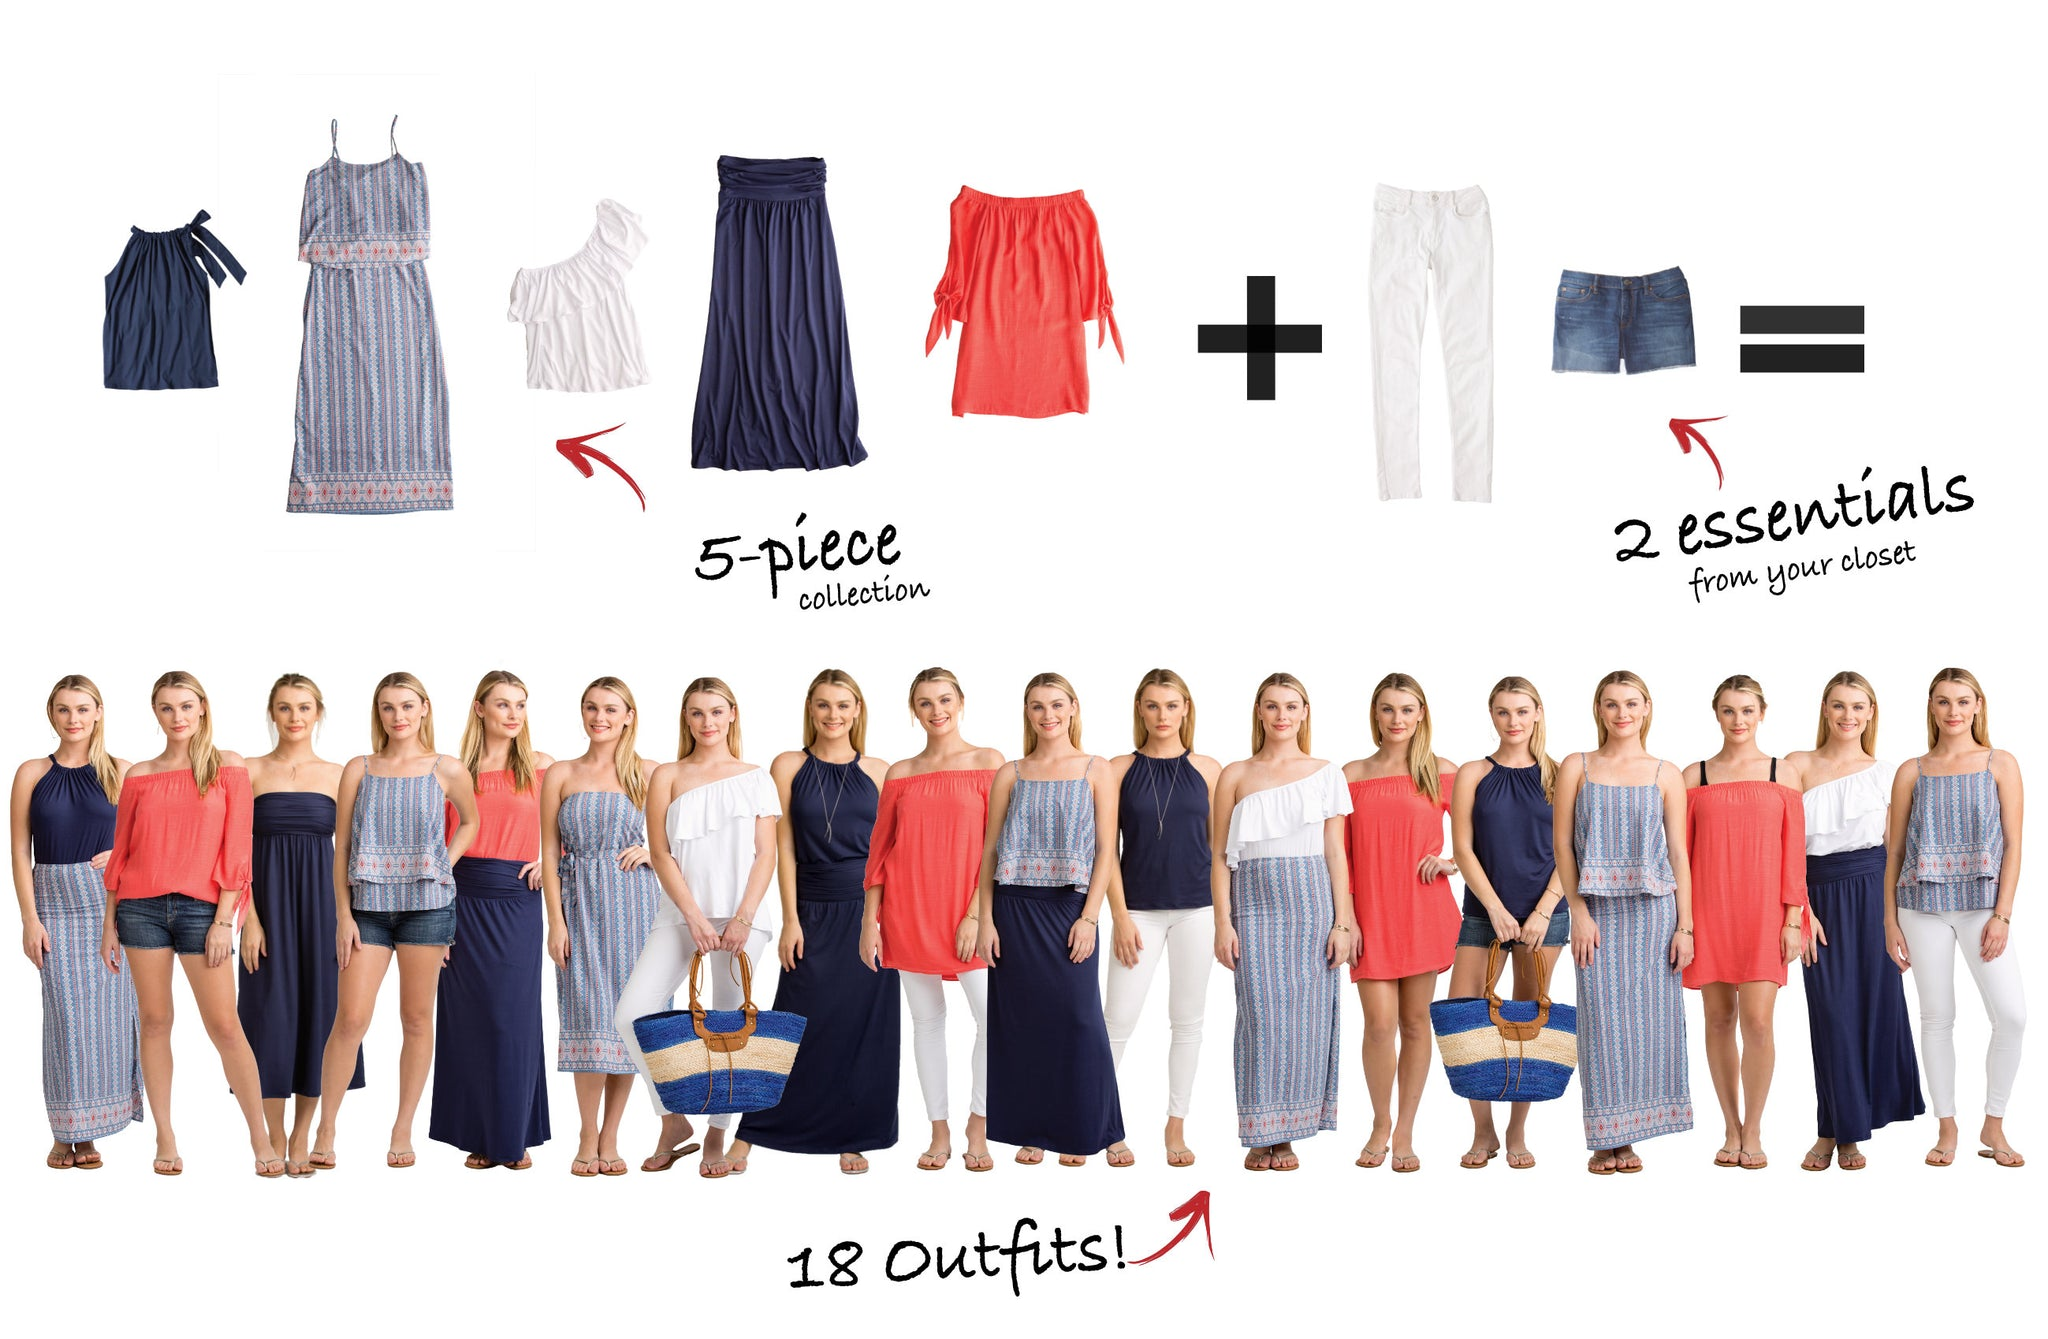 The Hamptons Collection: 5 items = 18 outfits